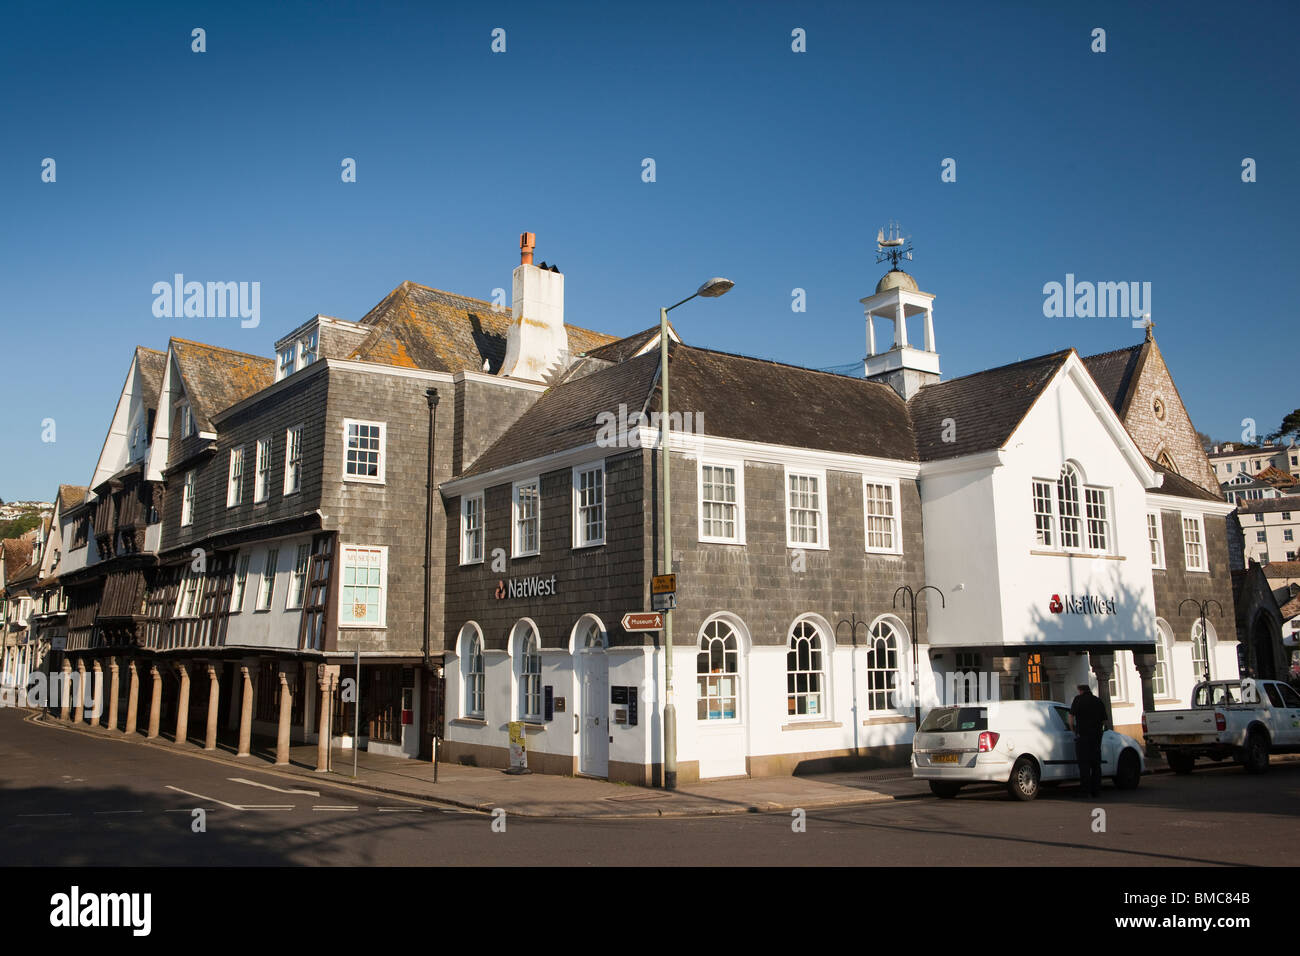 UK, England, Devon, Dartmouth, Town Centre historic butterwalk building and town museum - Stock Image